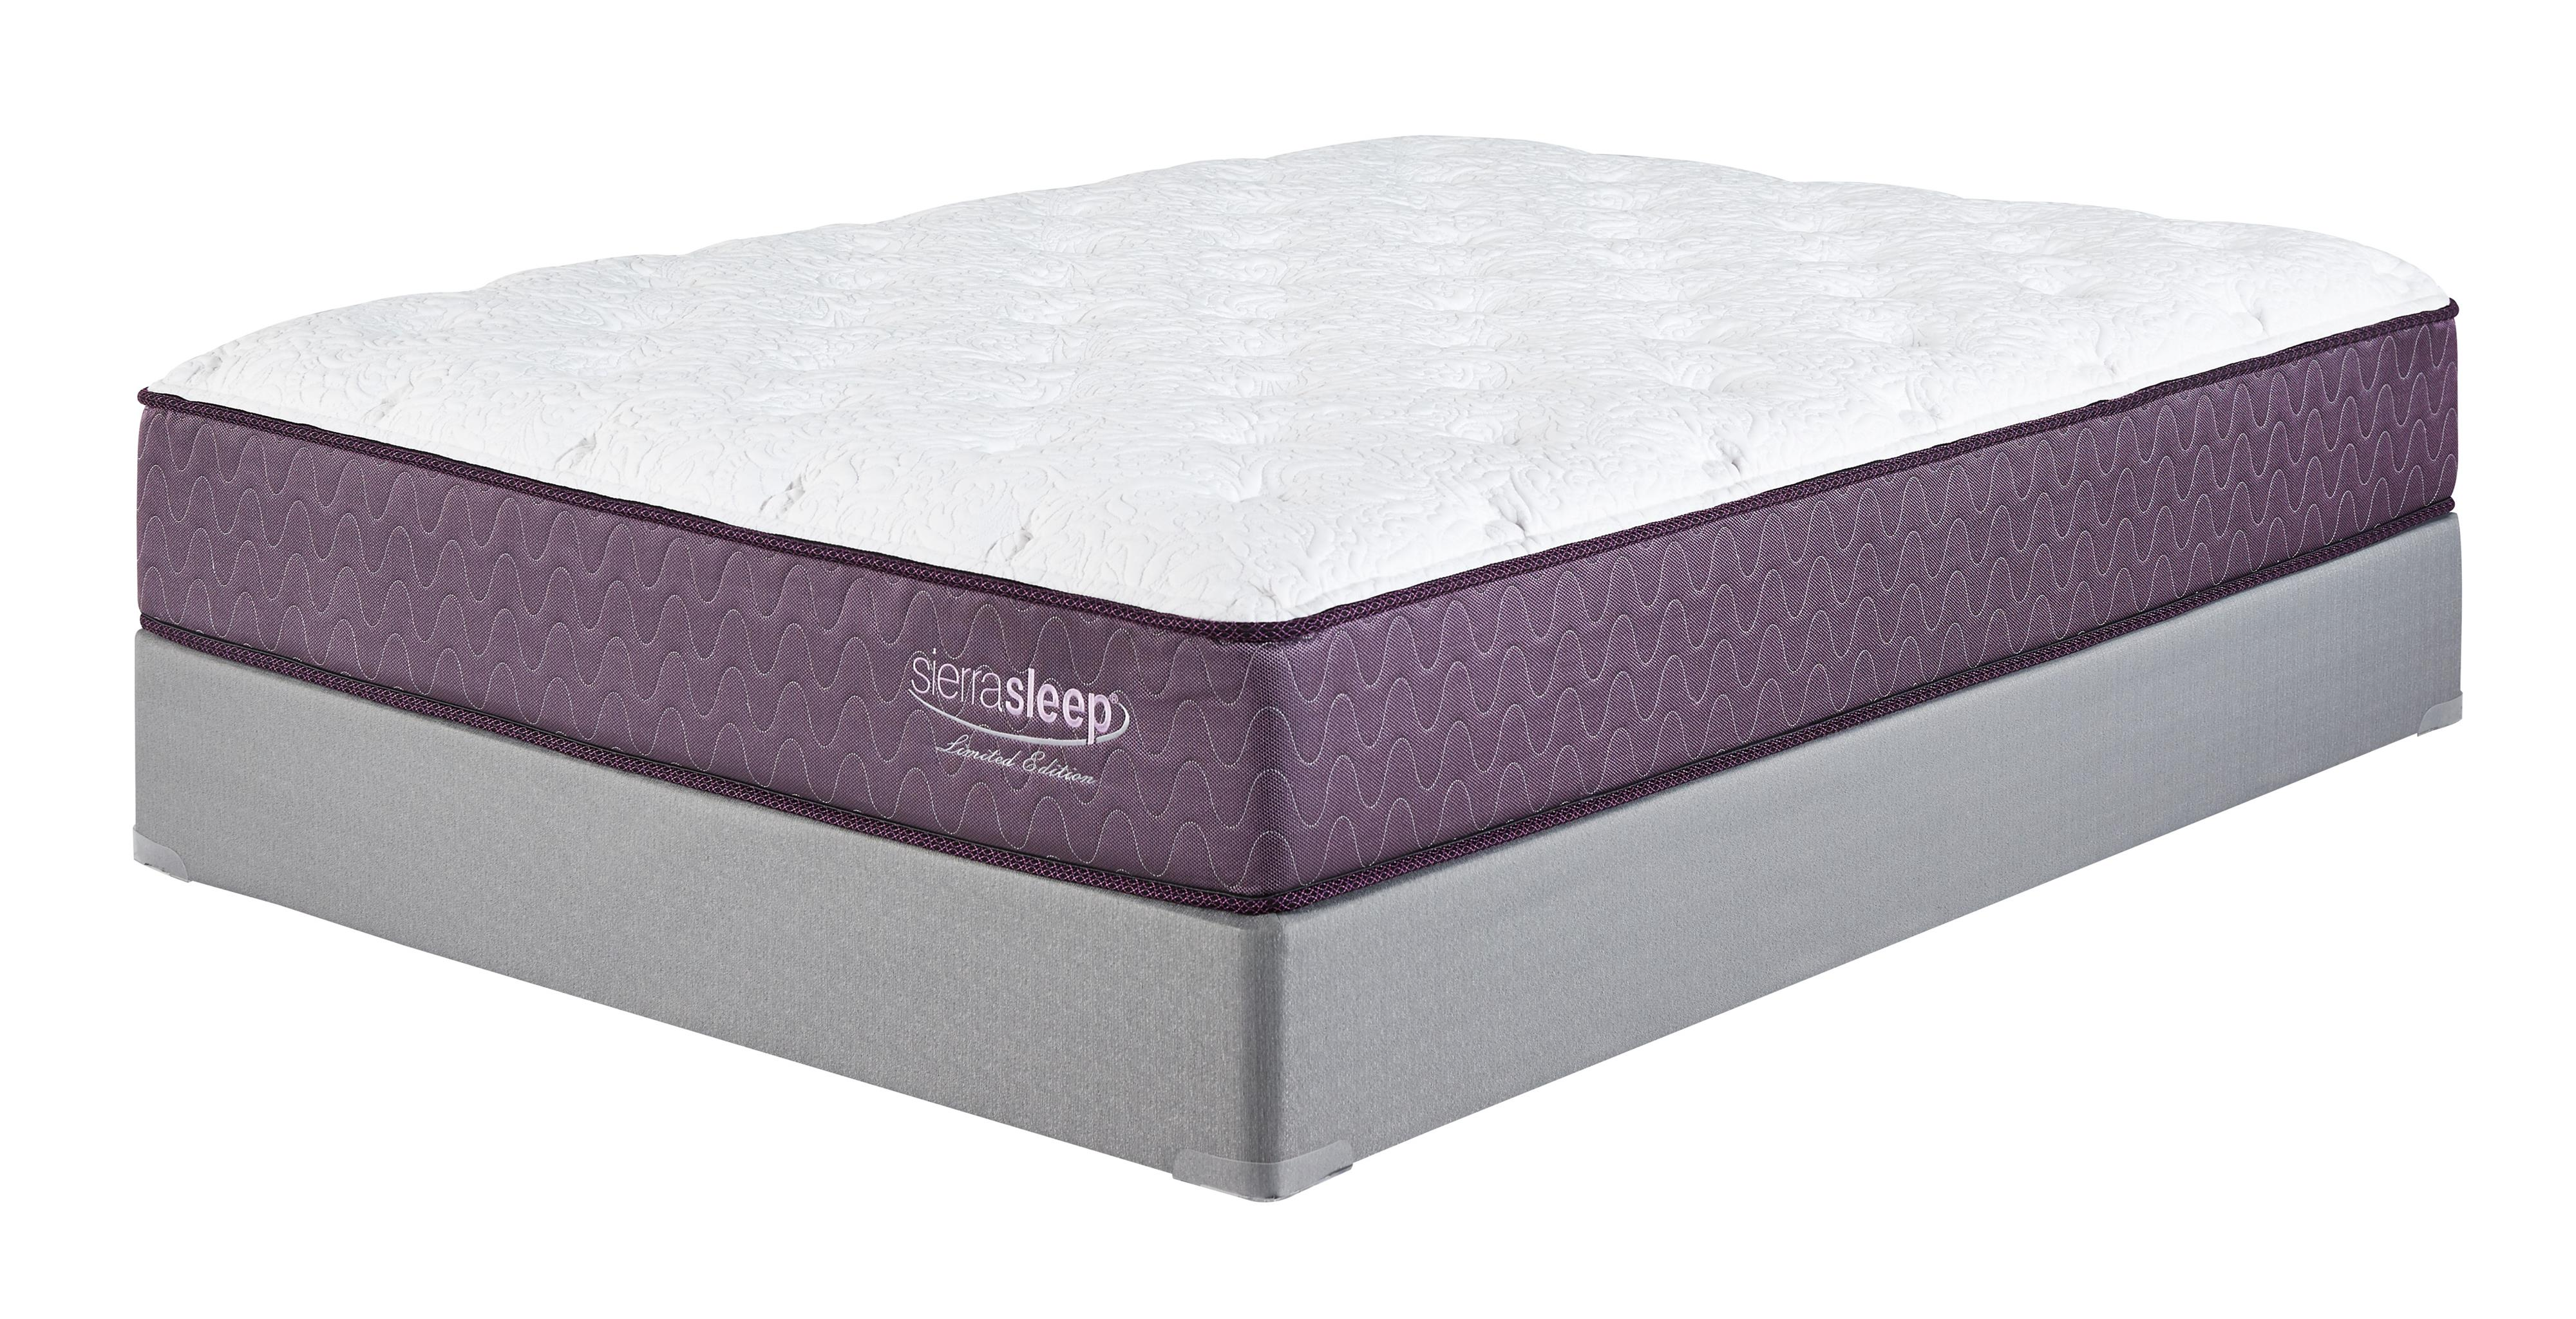 Sierra Sleep Limited Edition King Plush Mattress Set - Item Number: M96741+2xM81X42